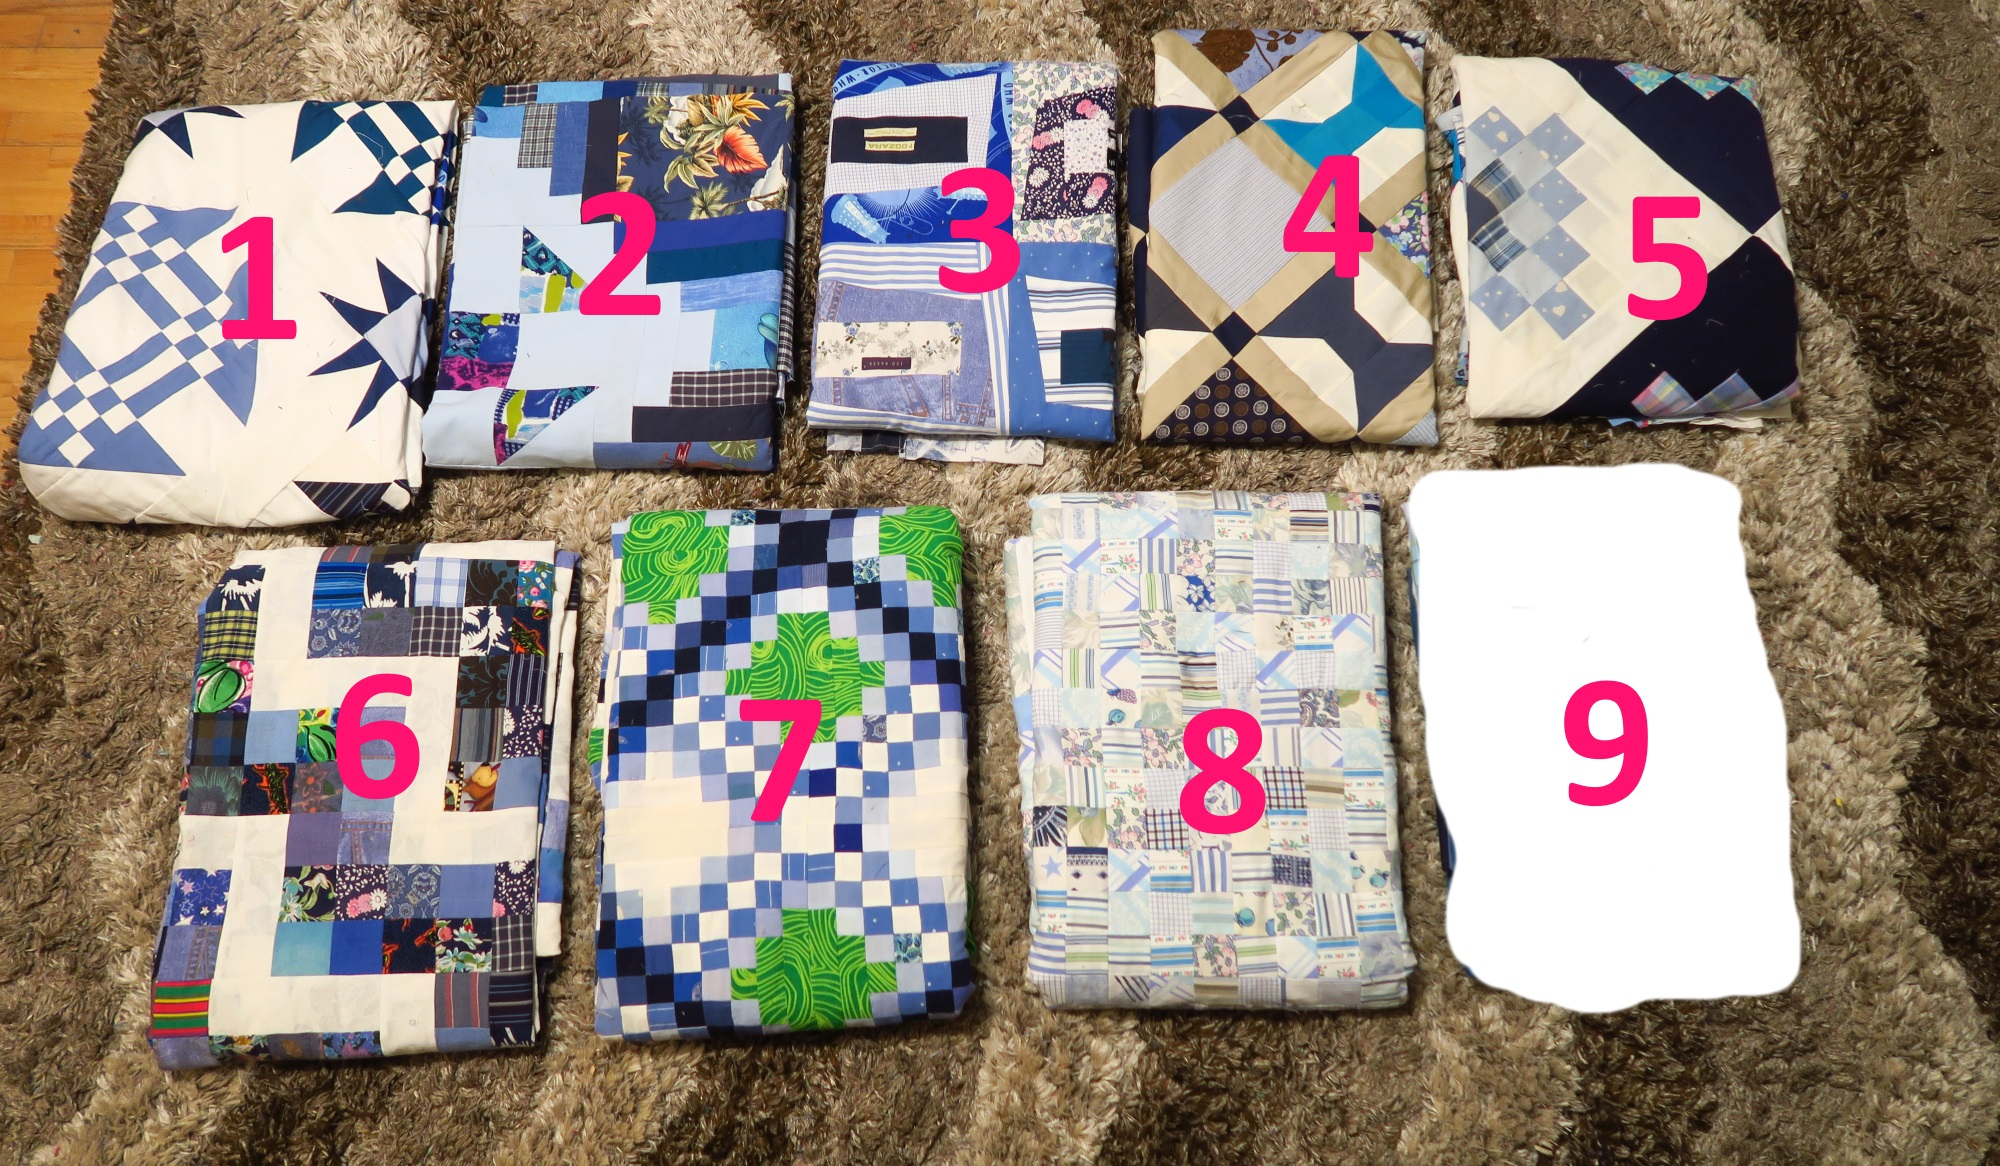 from upper left - 1.Starring Monkey Wrenches, 2. Periscope, 3. Premium Labels, 4. Peek a Boo, 5. Granny's Checkerboard, 6. Scrappy Rail Fence, 7. Triple Irish Delight, 8. Made Ya Look - at Blues, 9. not revealed yet. All of these are from all upcycled materials.  I'm working on getting the backings put together, also from all upcycled materials.